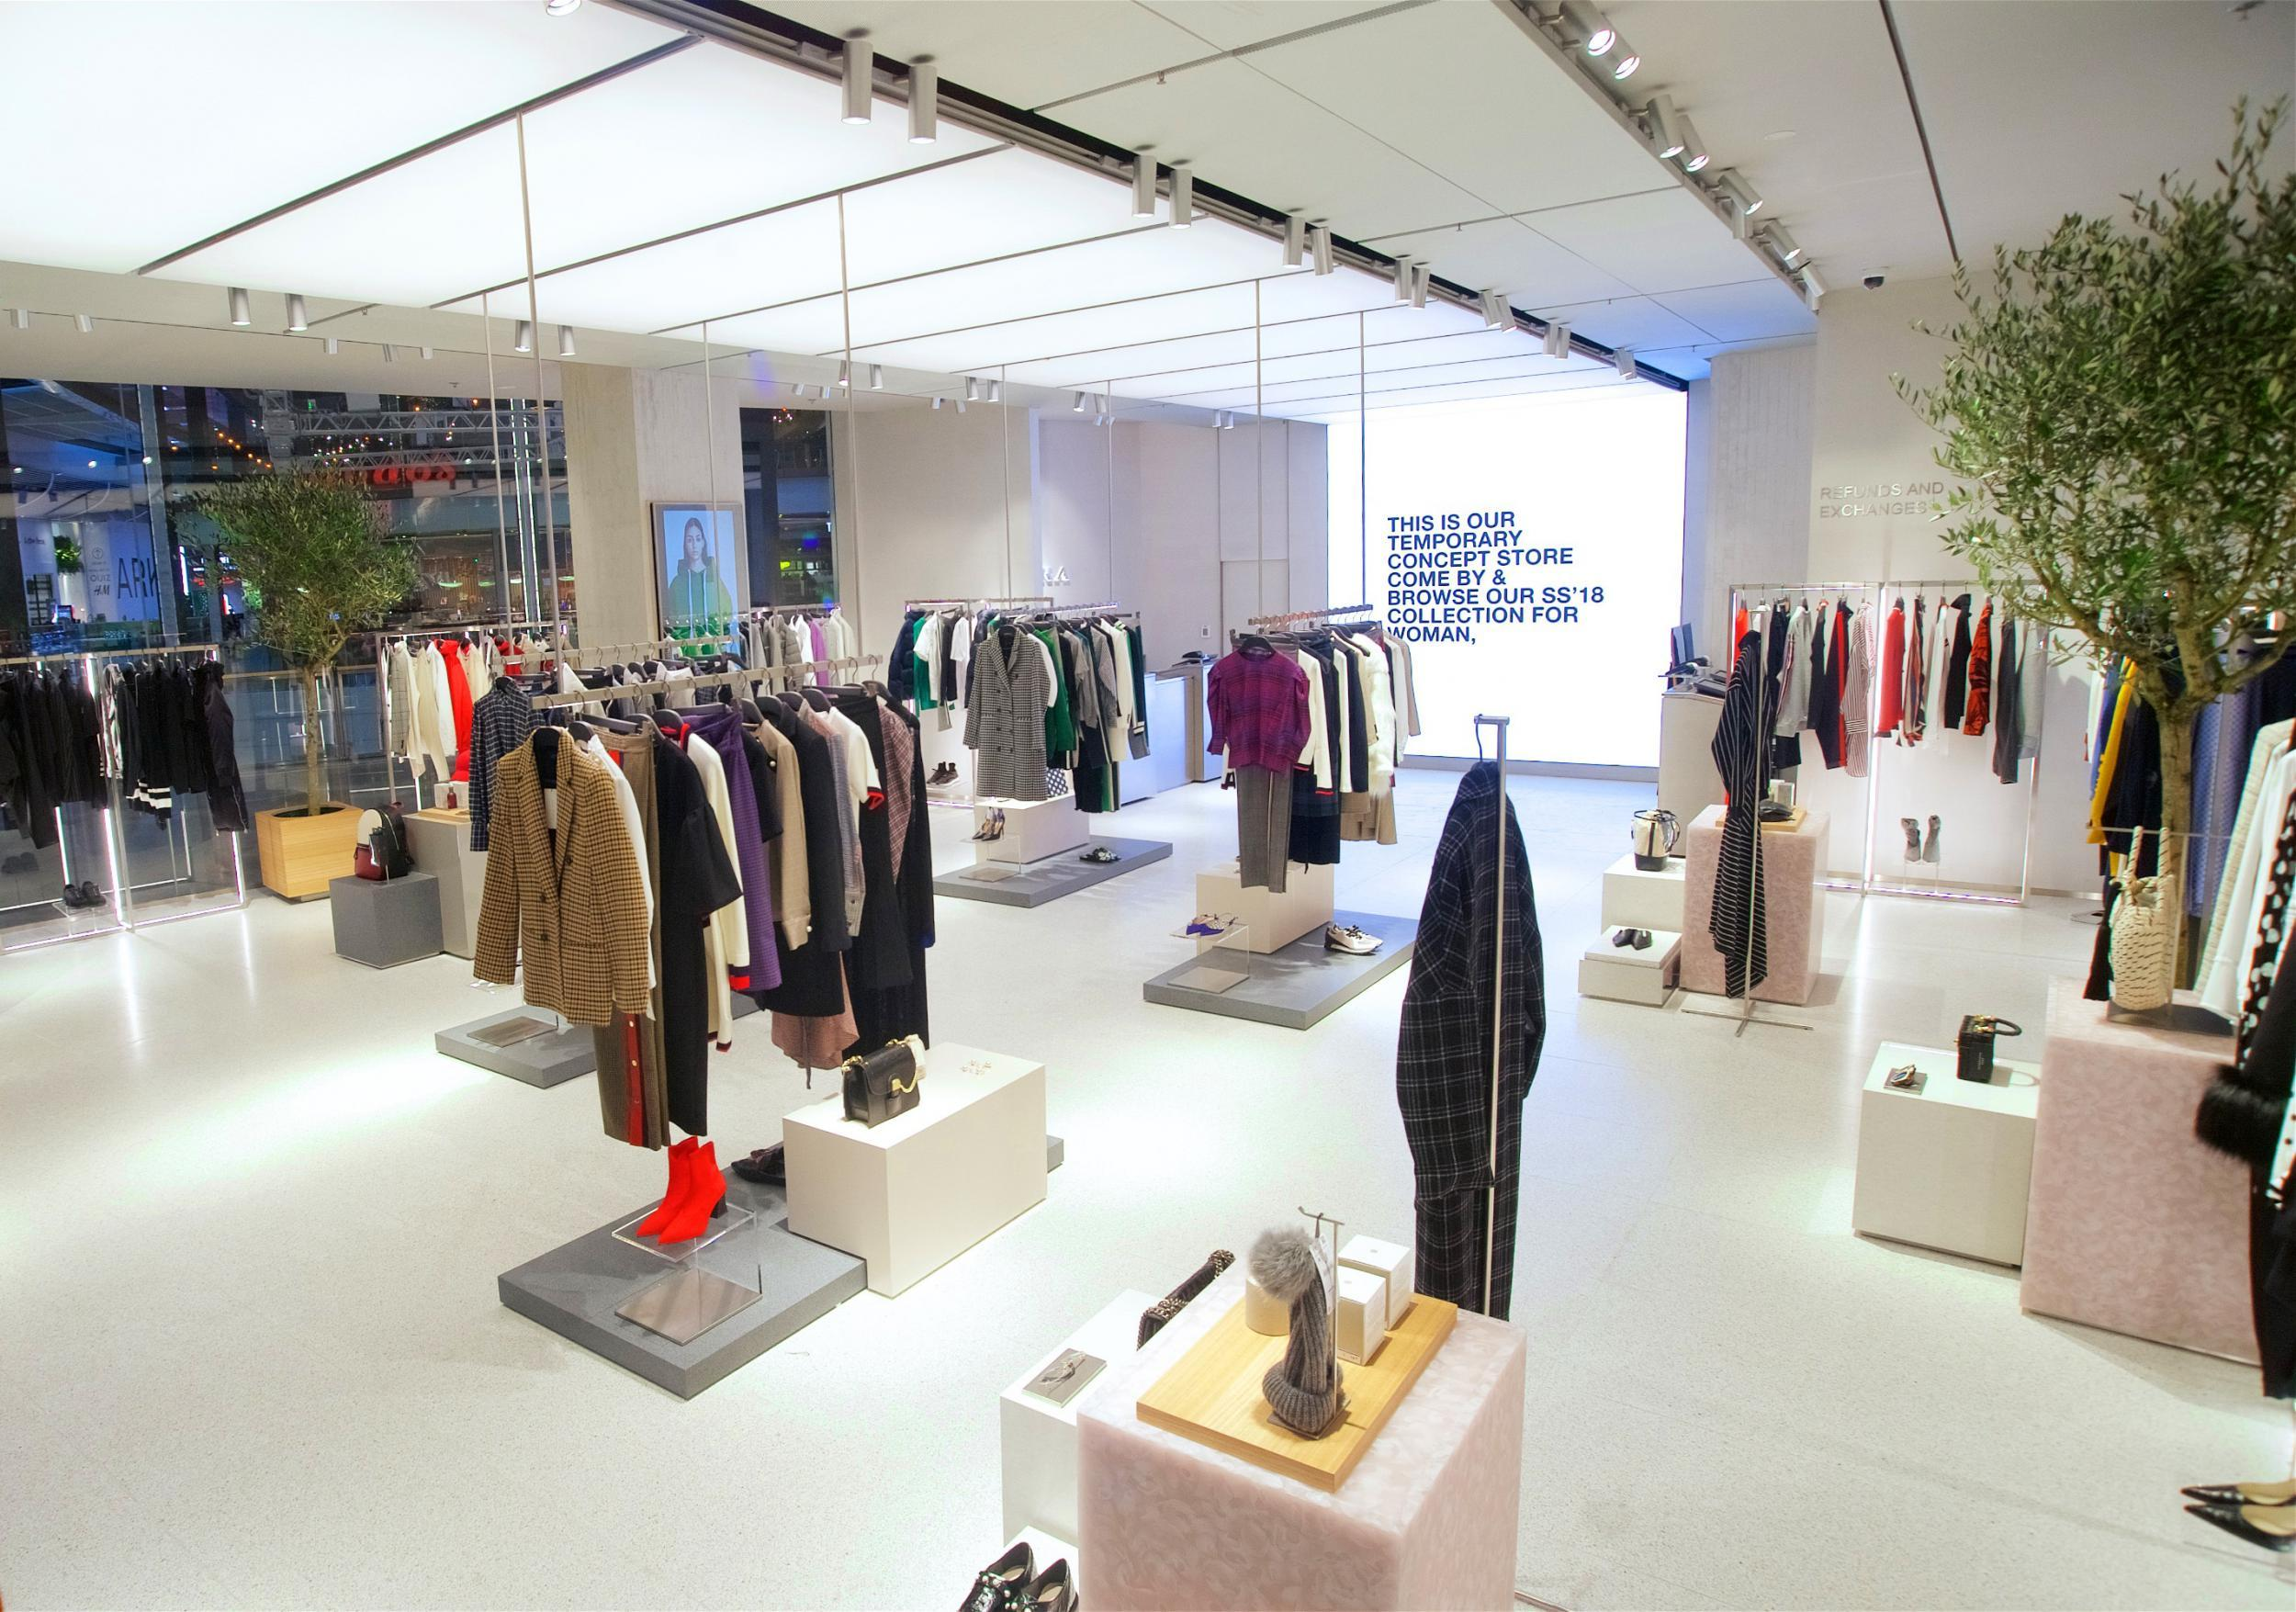 Exhibition Stand For Zara : Zara unveils new click and collect store the independent